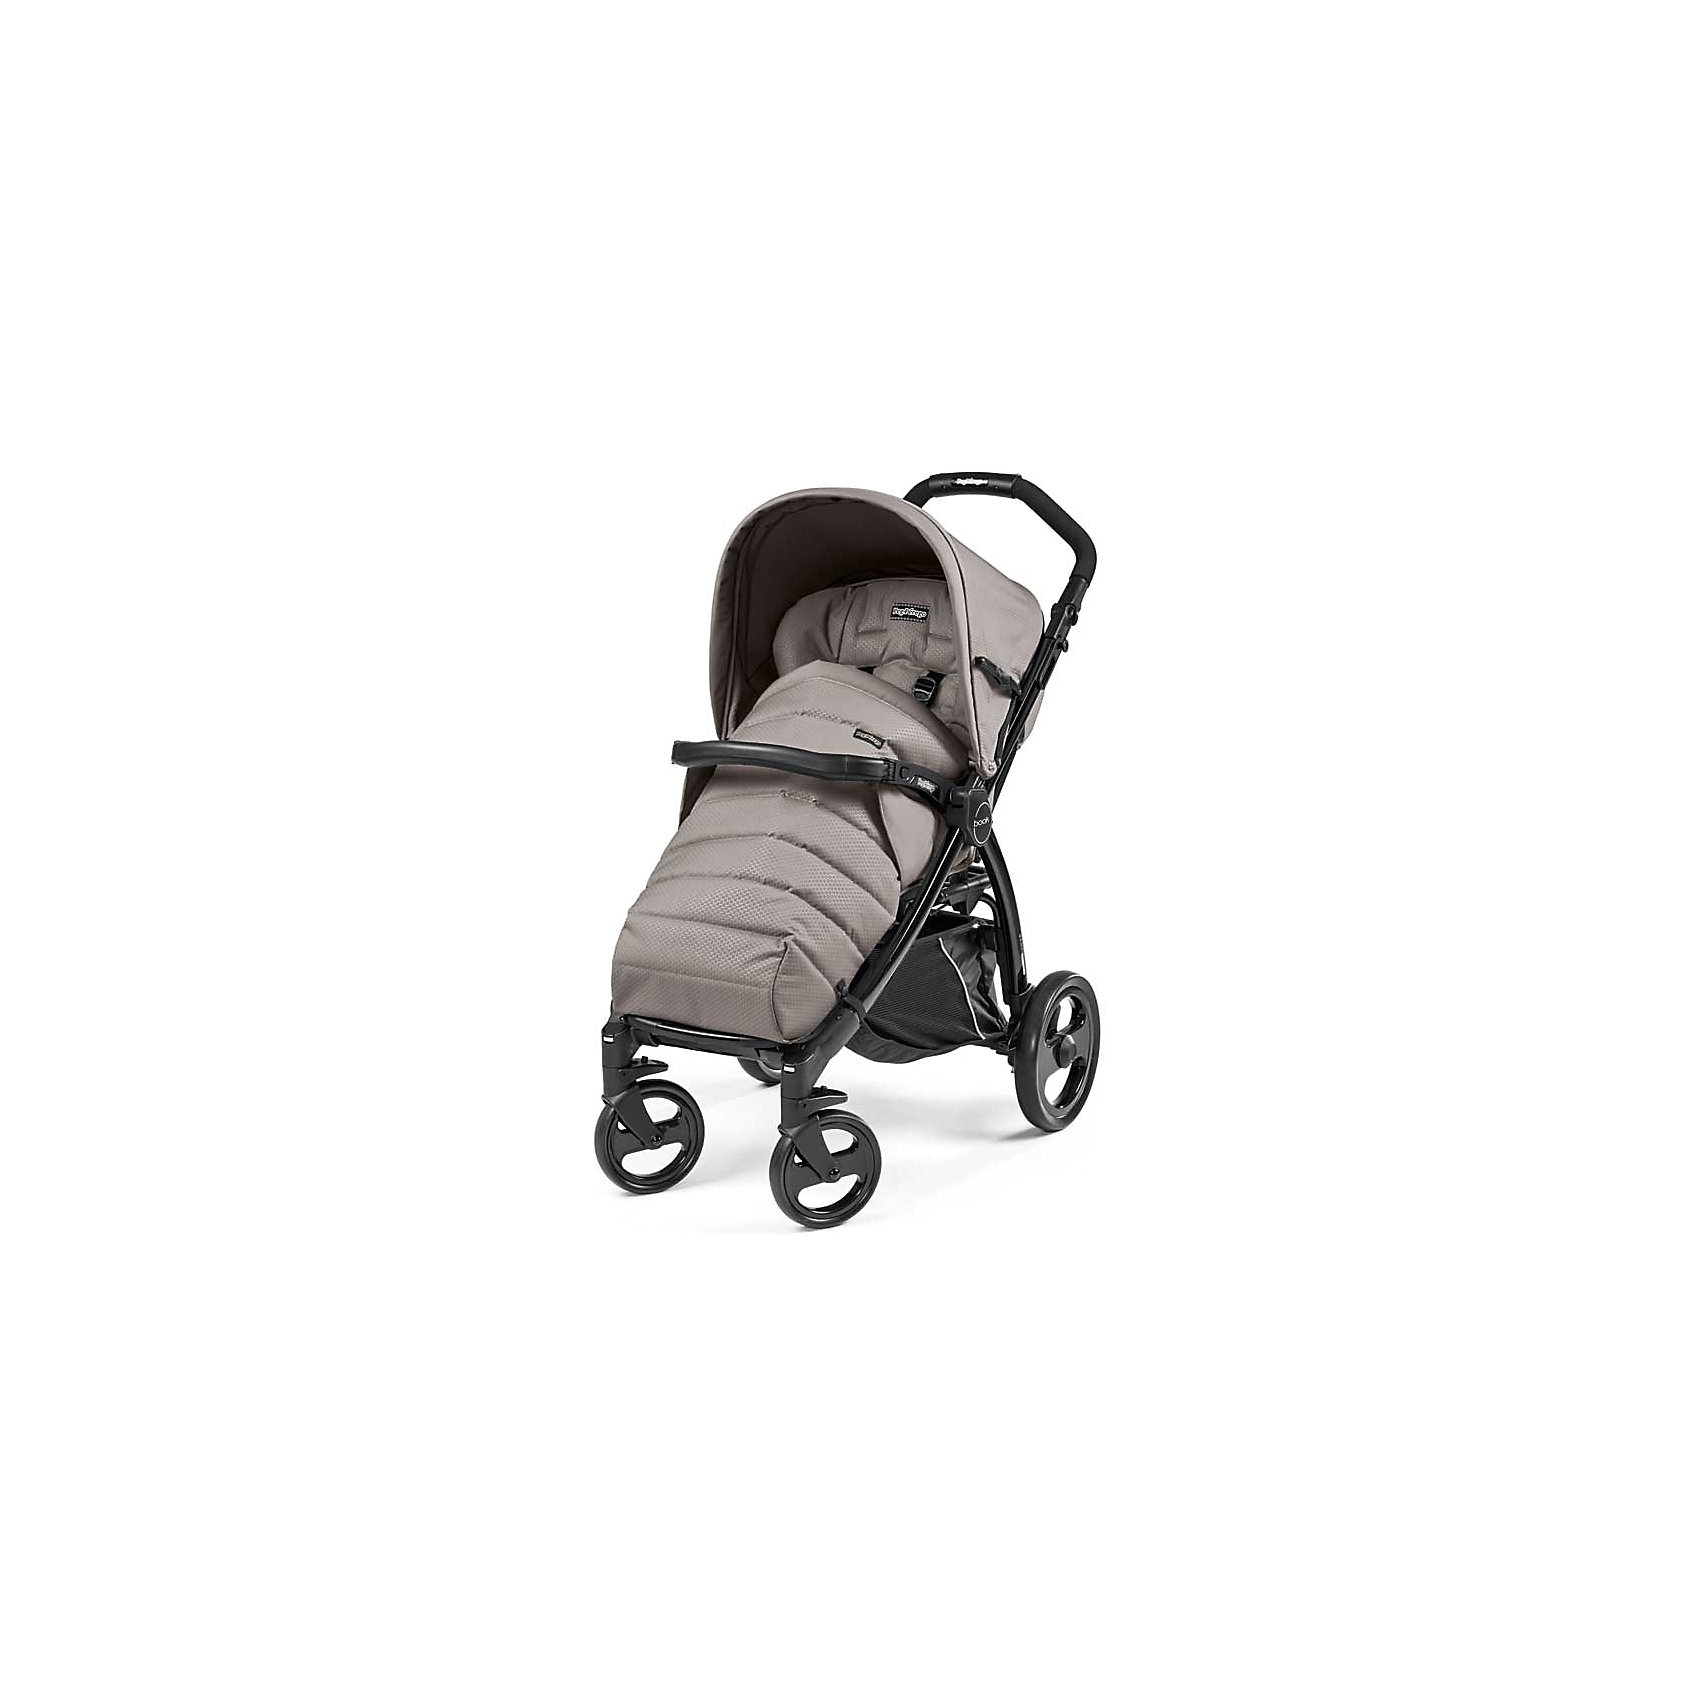 Peg Perego Прогулочная коляска Peg-Perego Book Completo, Mod Beige